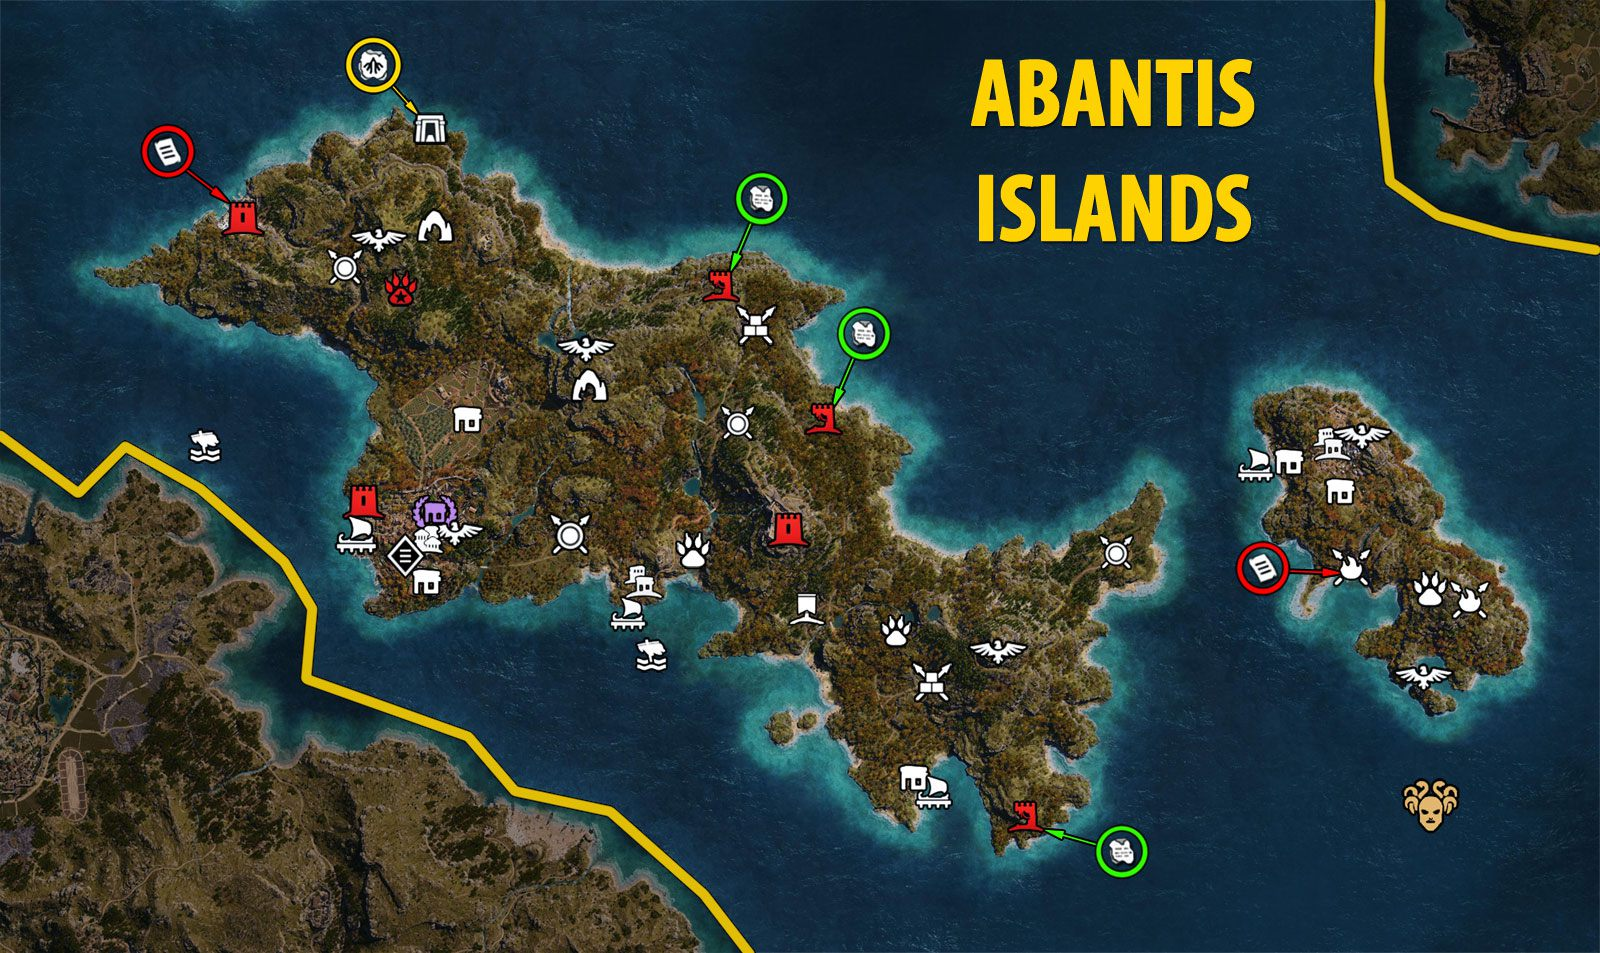 Abantis Islands Map in Assassin's Creed Odyssey